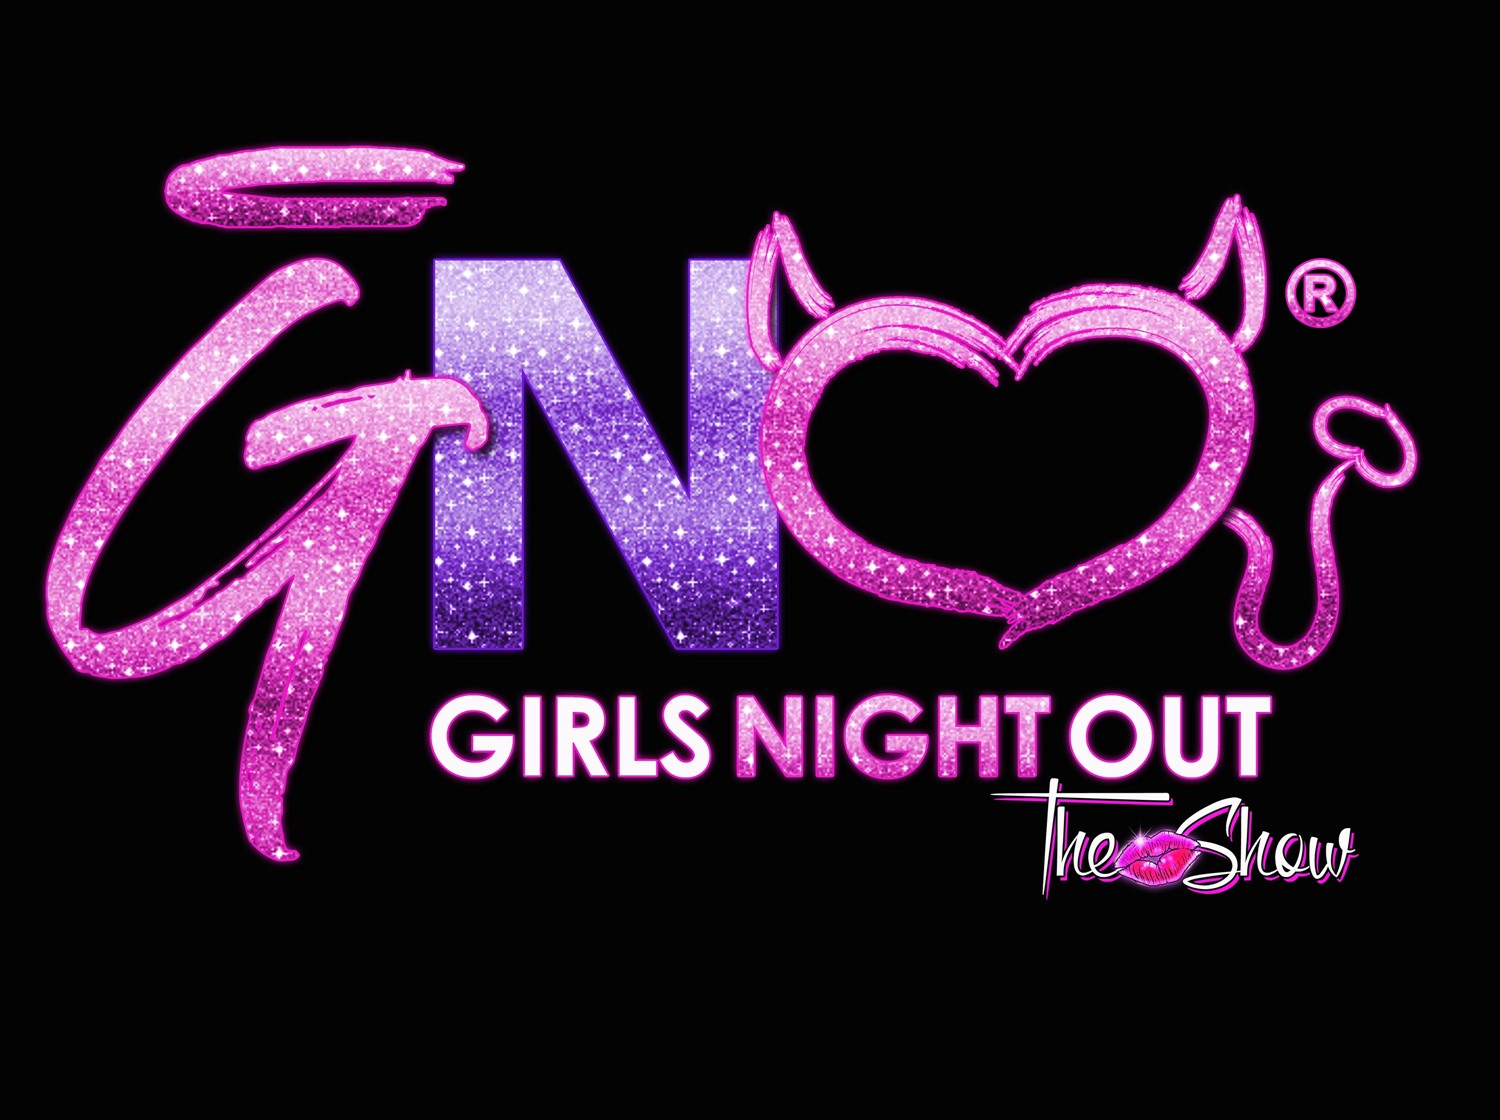 El Copacabana de Chepes (18+) Orlando, FL on Feb 21, 20:00@El Copacabana de Chepes - Buy tickets and Get information on Girls Night Out the Show tickets.girlsnightouttheshow.com